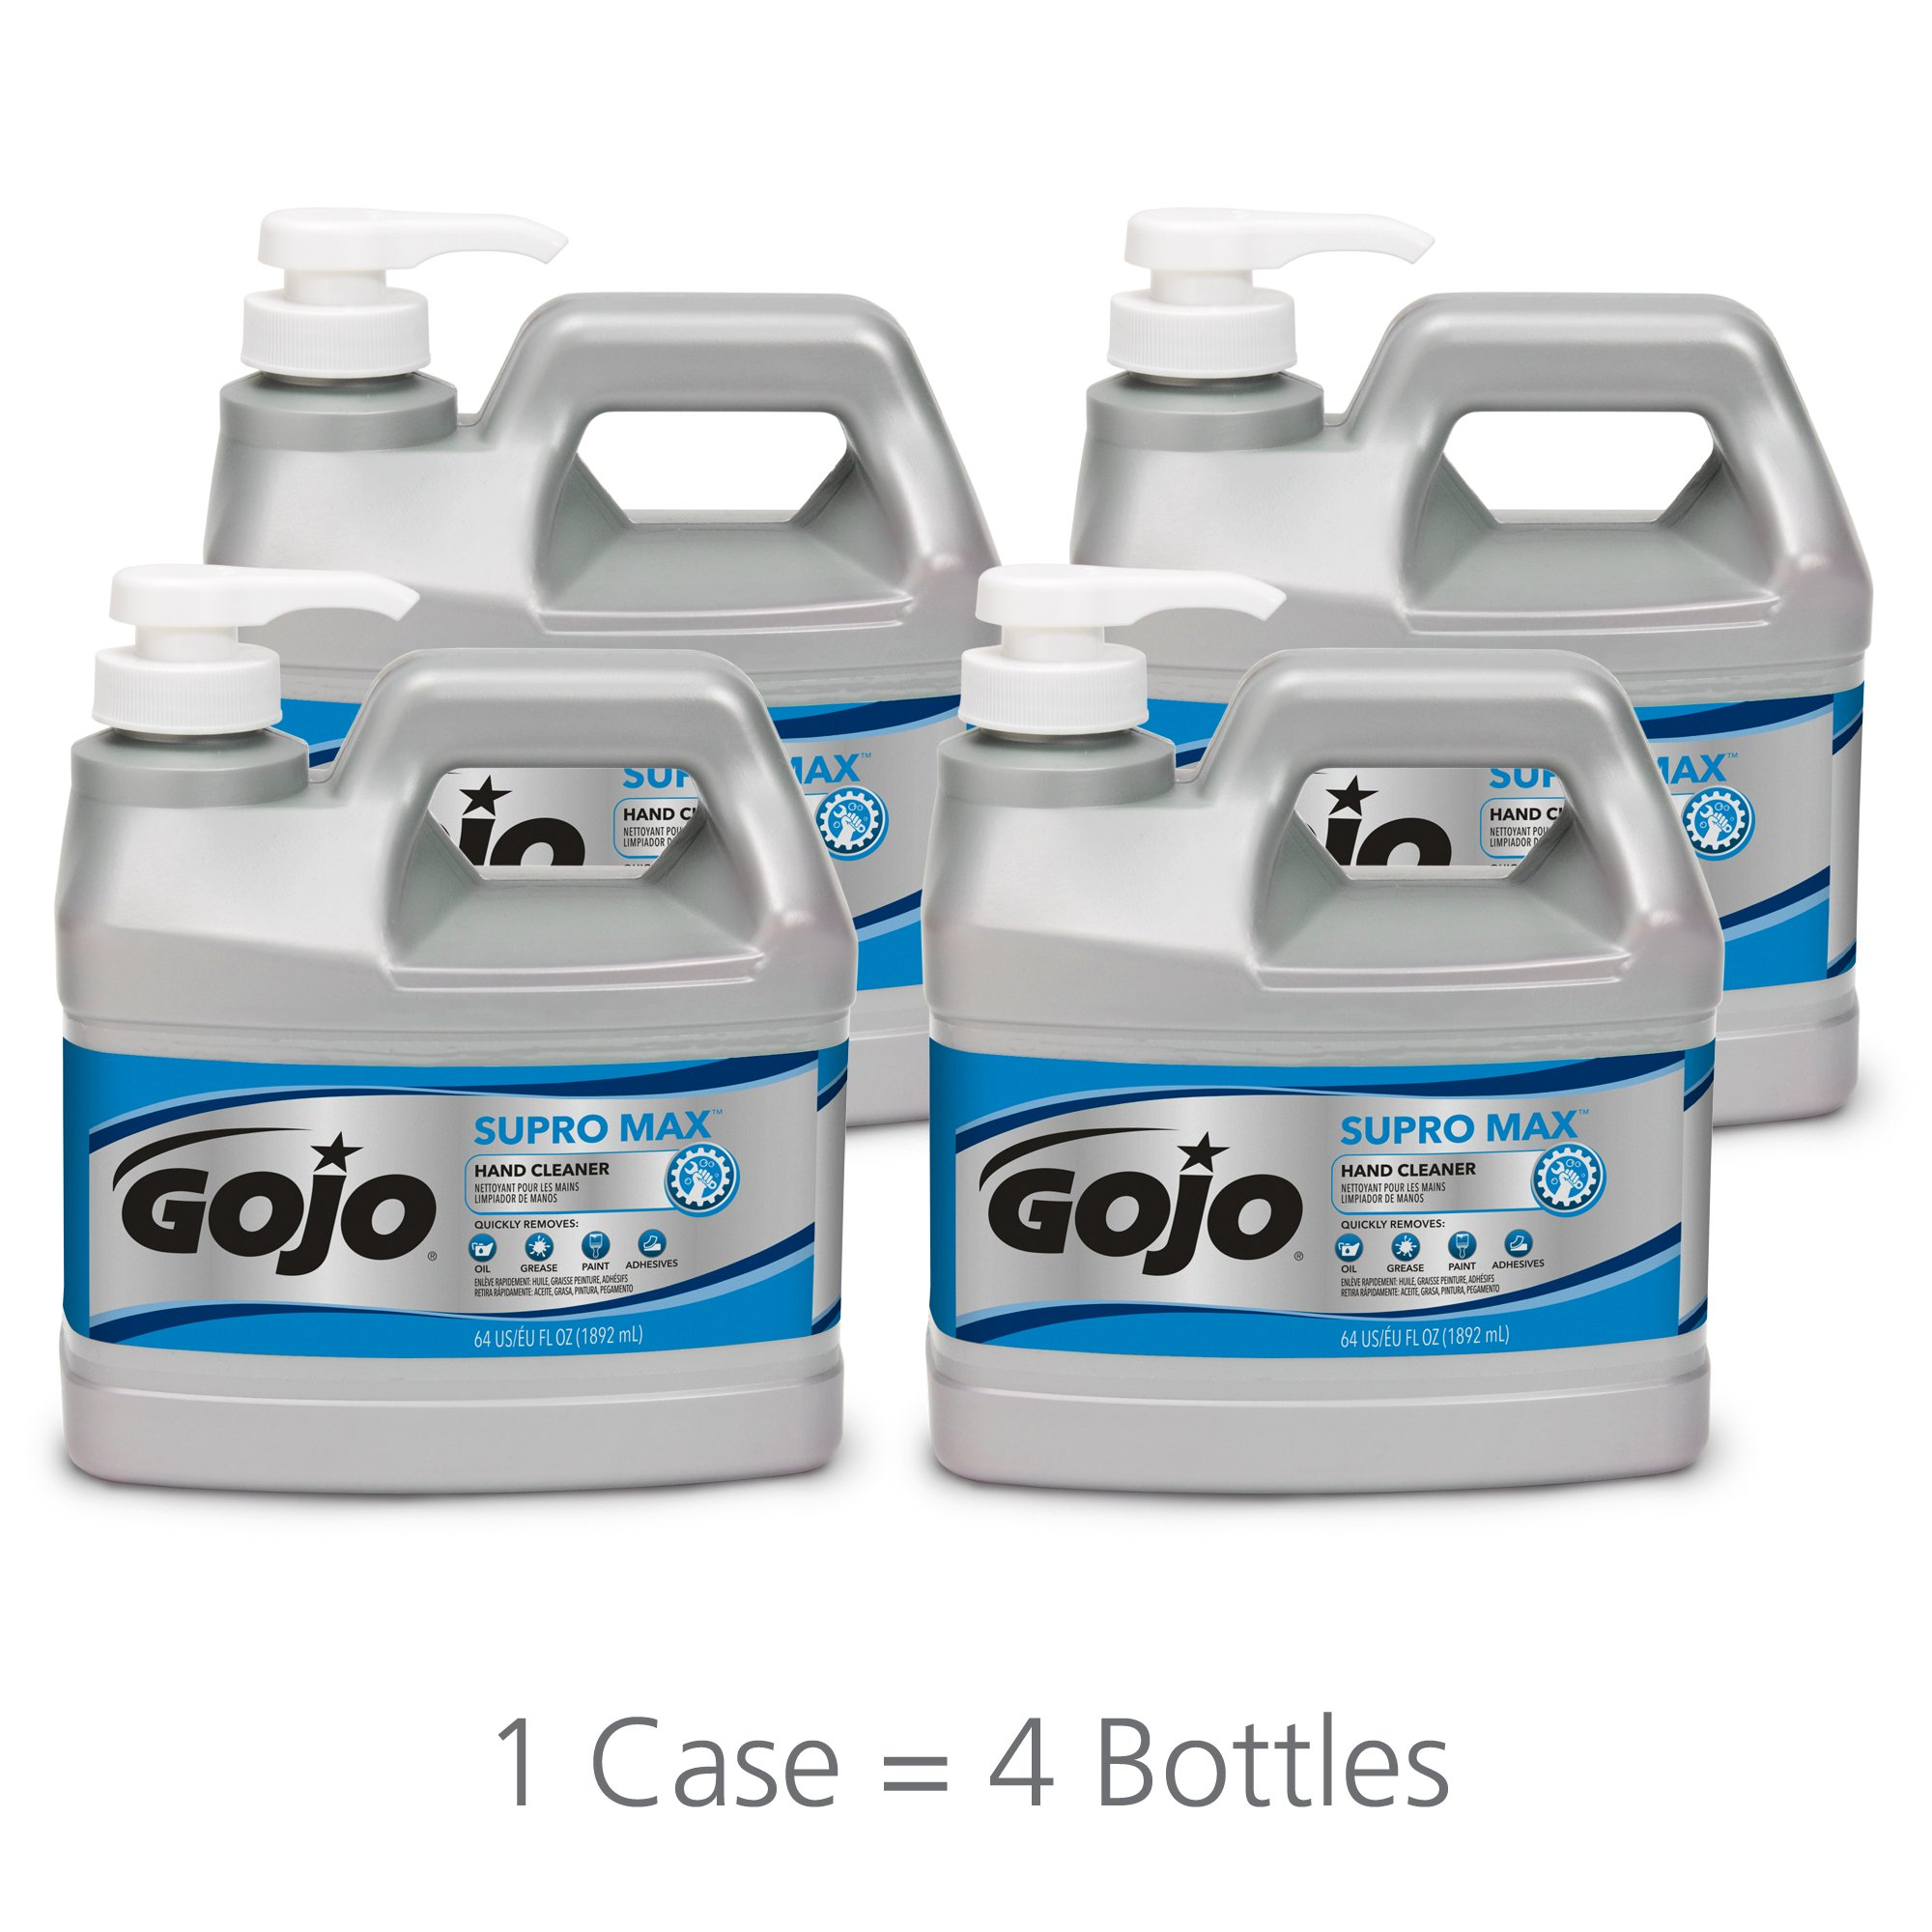 GOJO SUPRO MAX Hand Cleaner, 1/2 Gallon Heavy Duty Hand Cleaner Pump Bottles (Pack of 4) – 0972-04